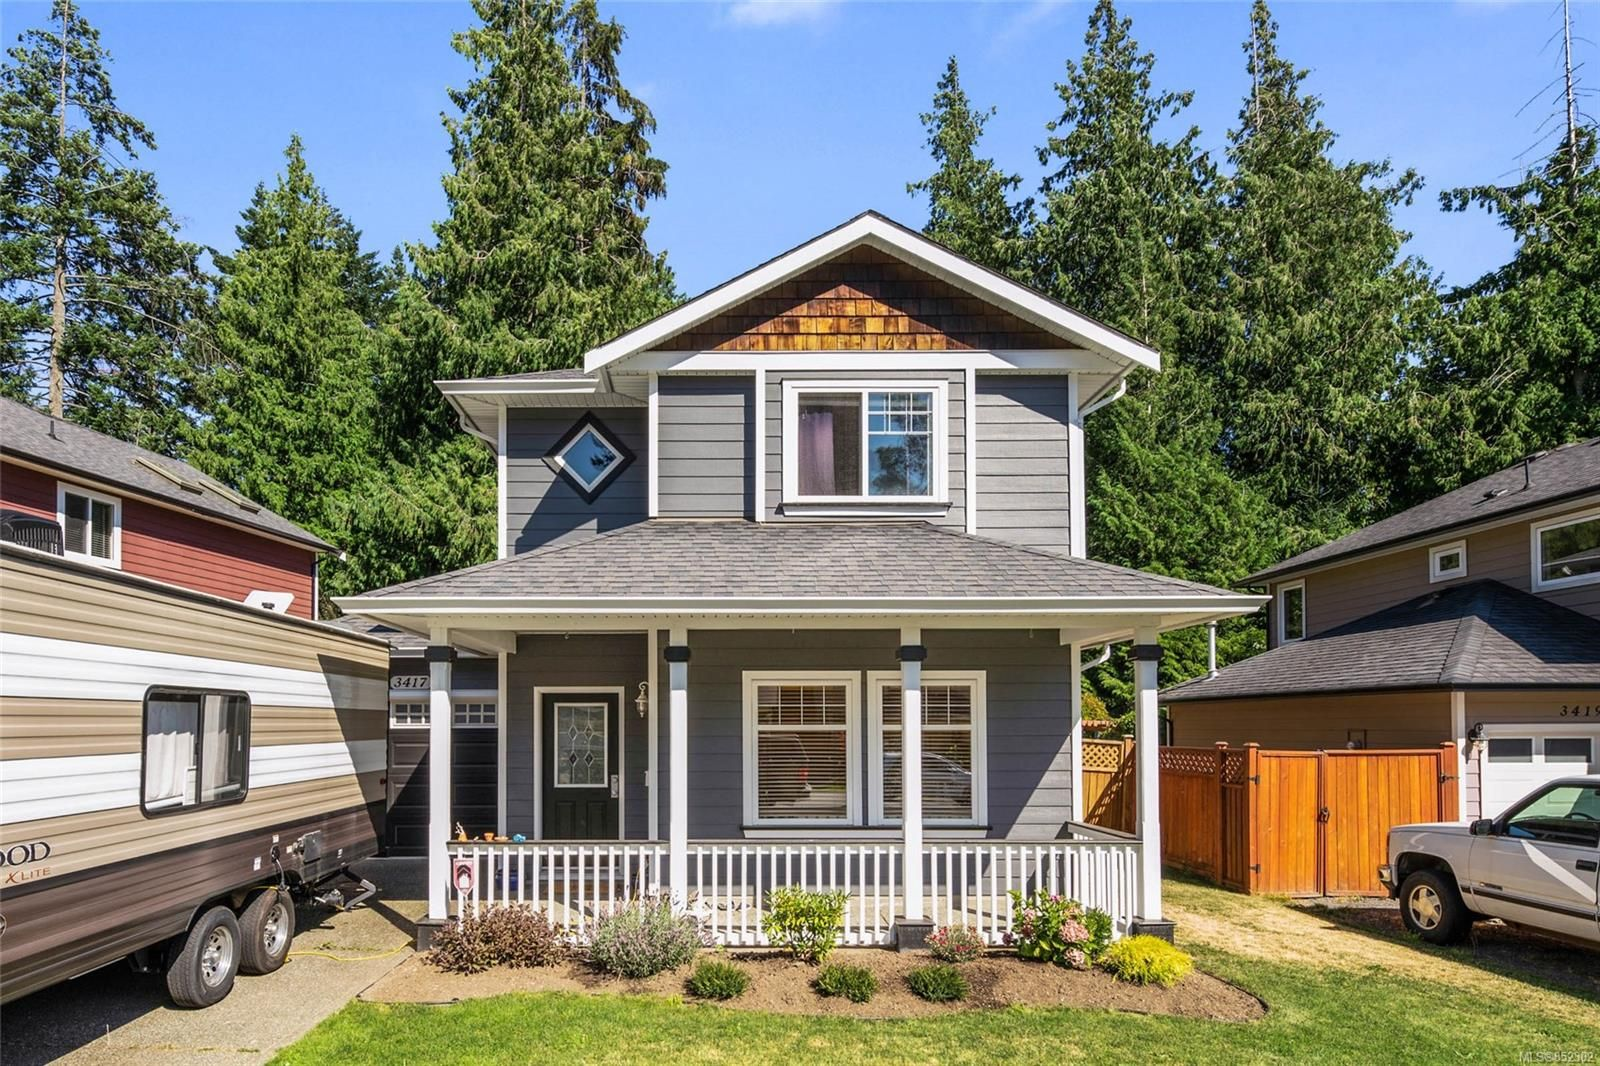 Main Photo: 3417 Pattison Way in : Co Triangle House for sale (Colwood)  : MLS®# 852302